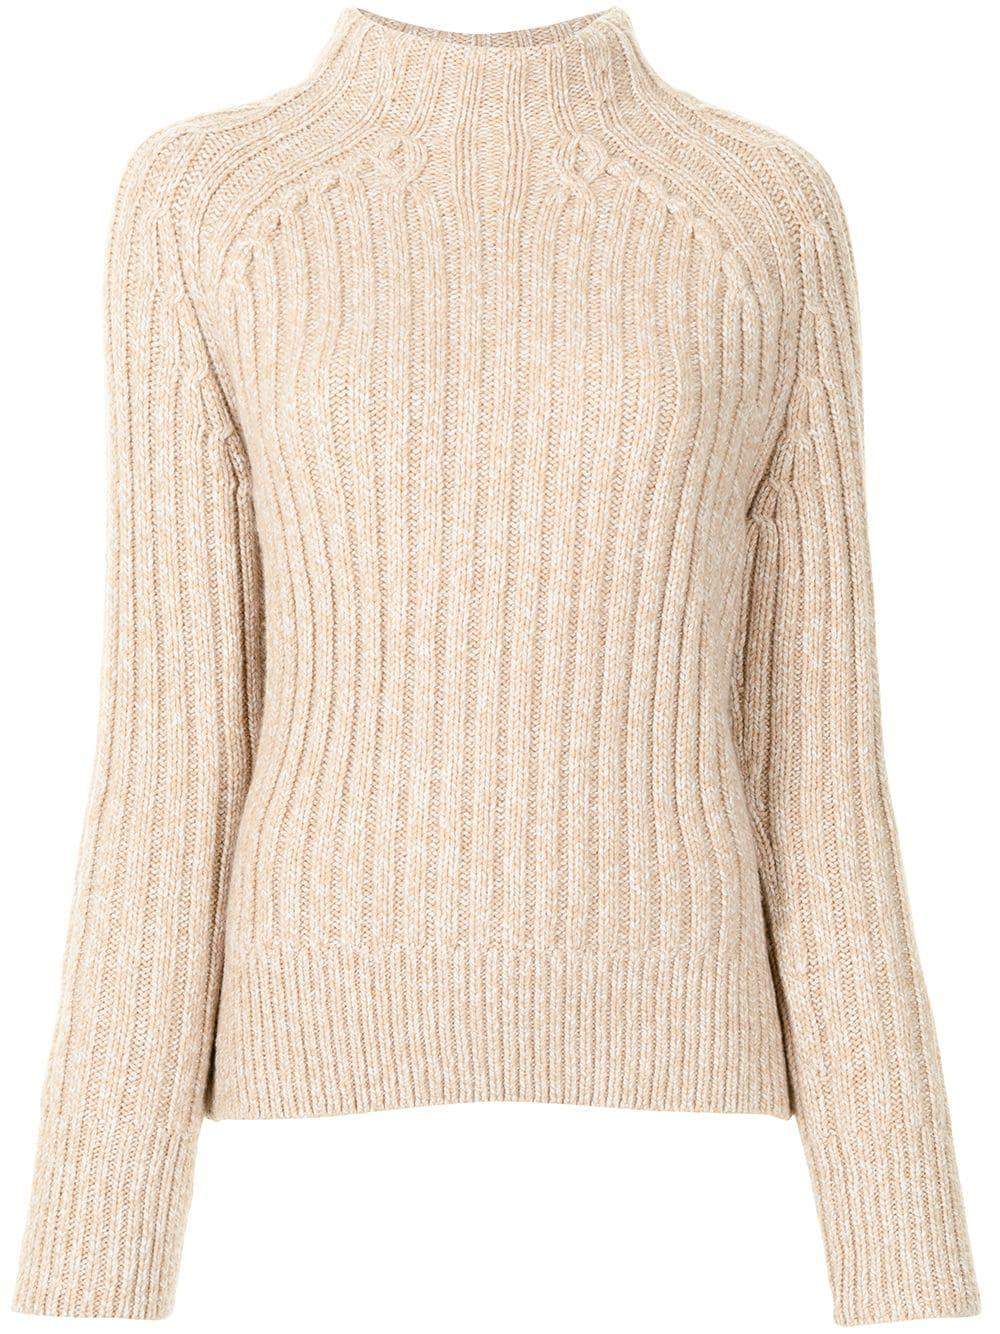 Rib Knit Mock Neck Sweater